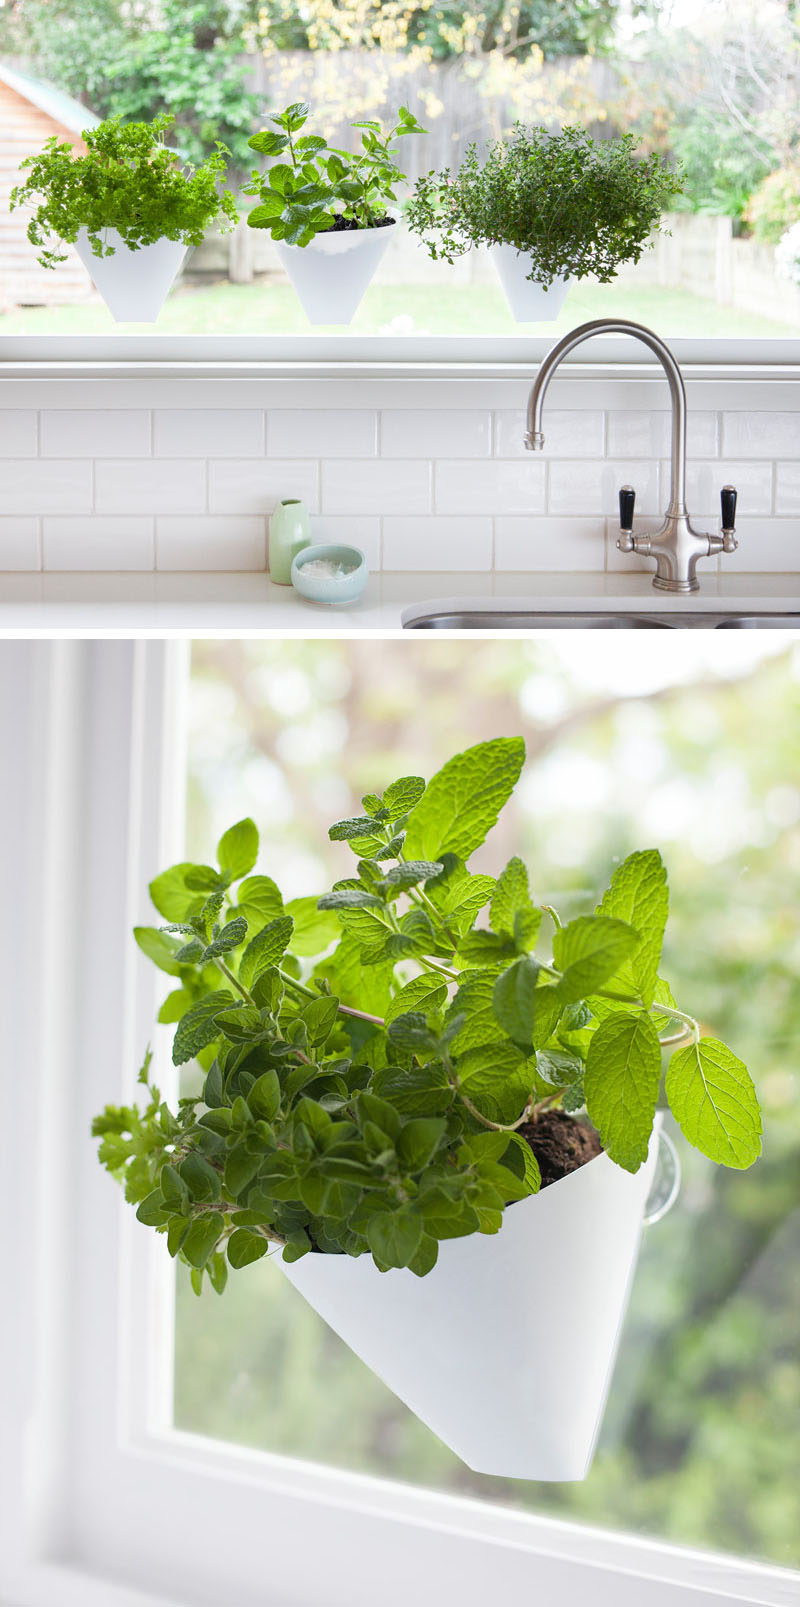 Indoor Garden Ideas - Hang Your Plants From The Ceiling & Walls // These planters suction cup to the window.